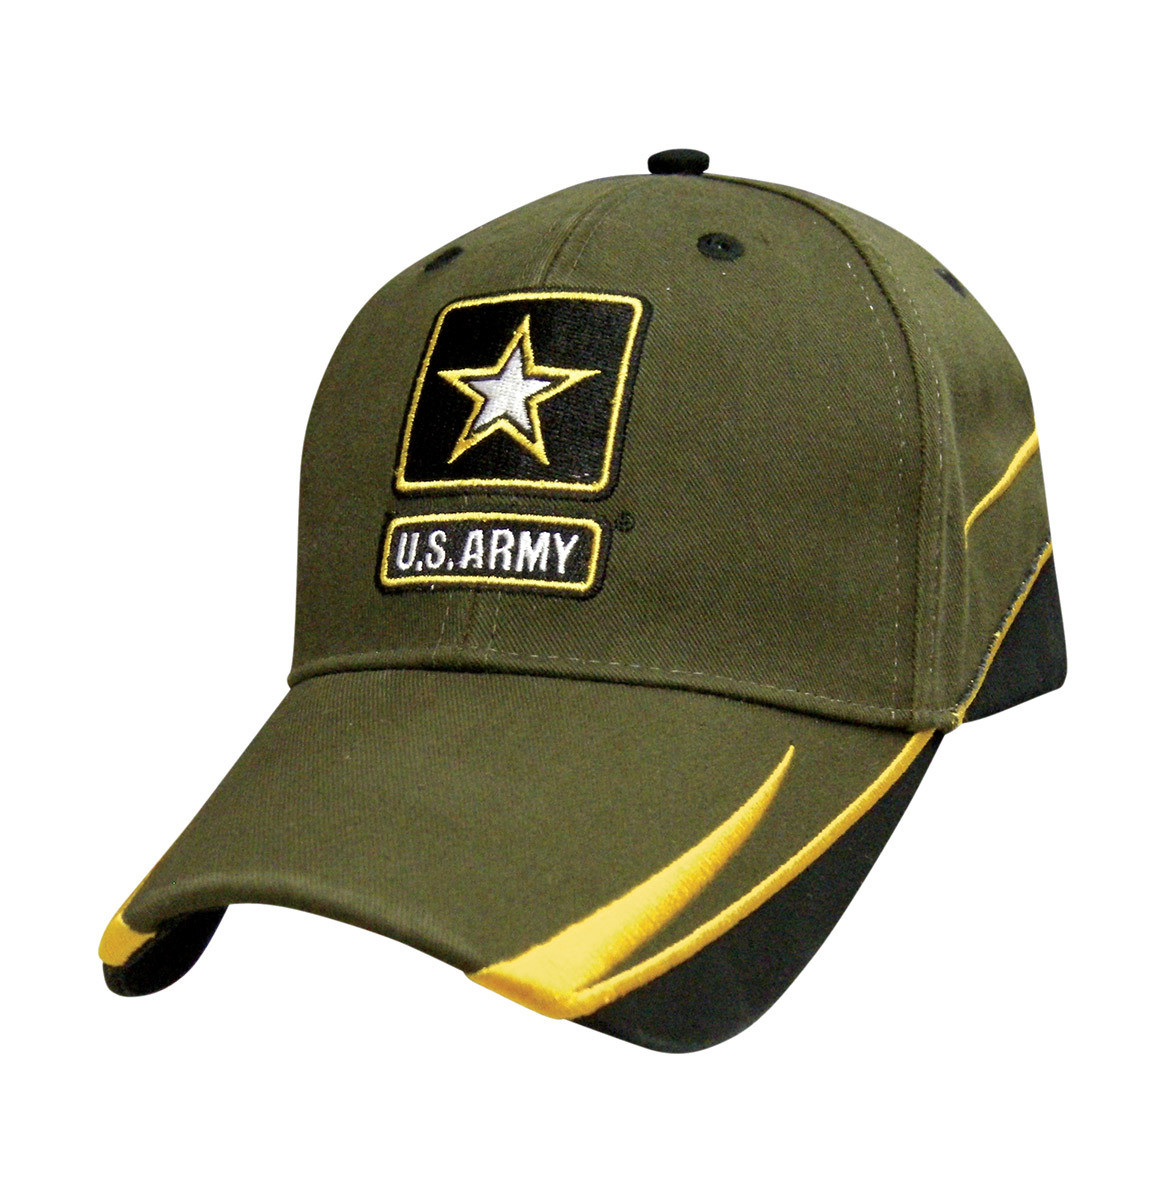 Army Embroidered Cap Baseball Hat United States Army Swish Edition USA SHIPPER